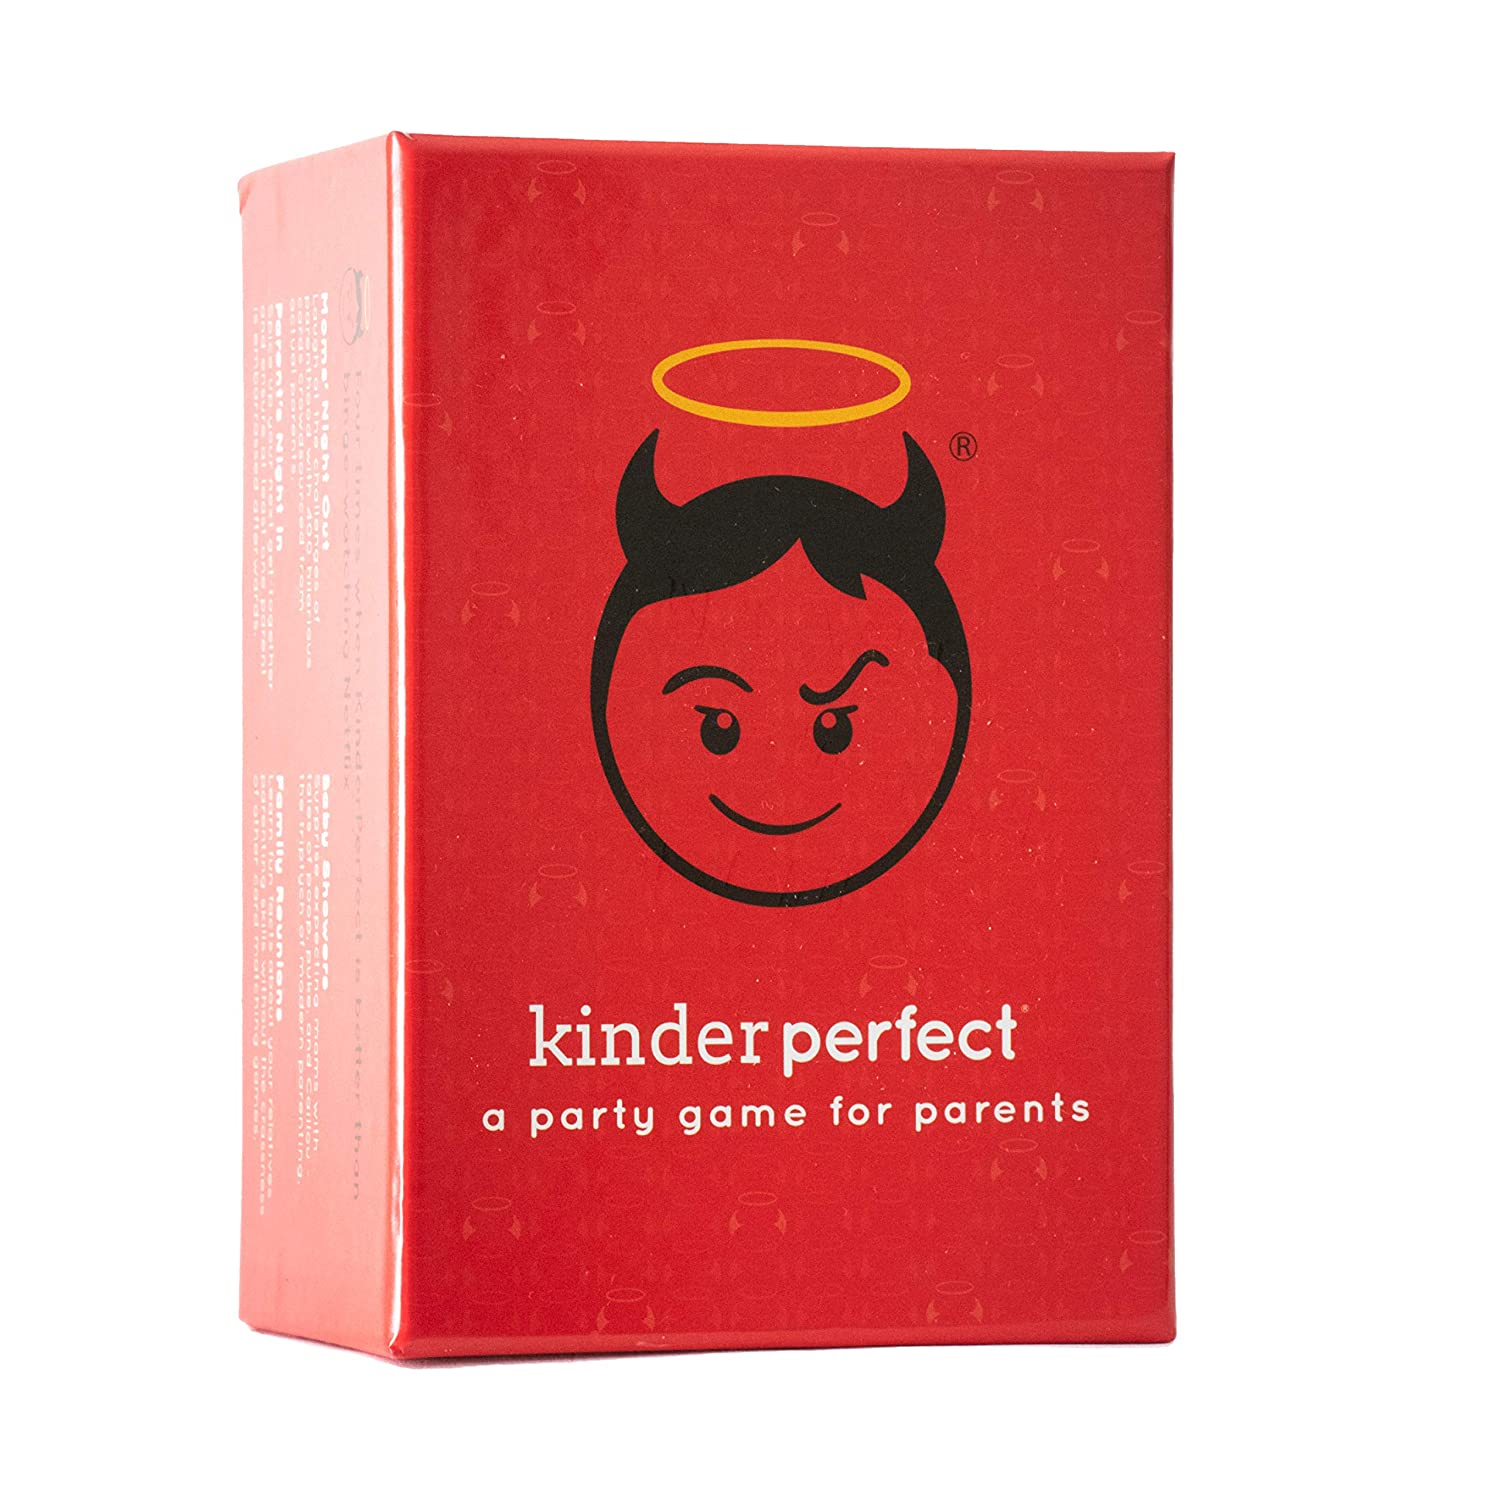 Amazon.com: KinderPerfect - The Hilarious Parents Party Card Game ...